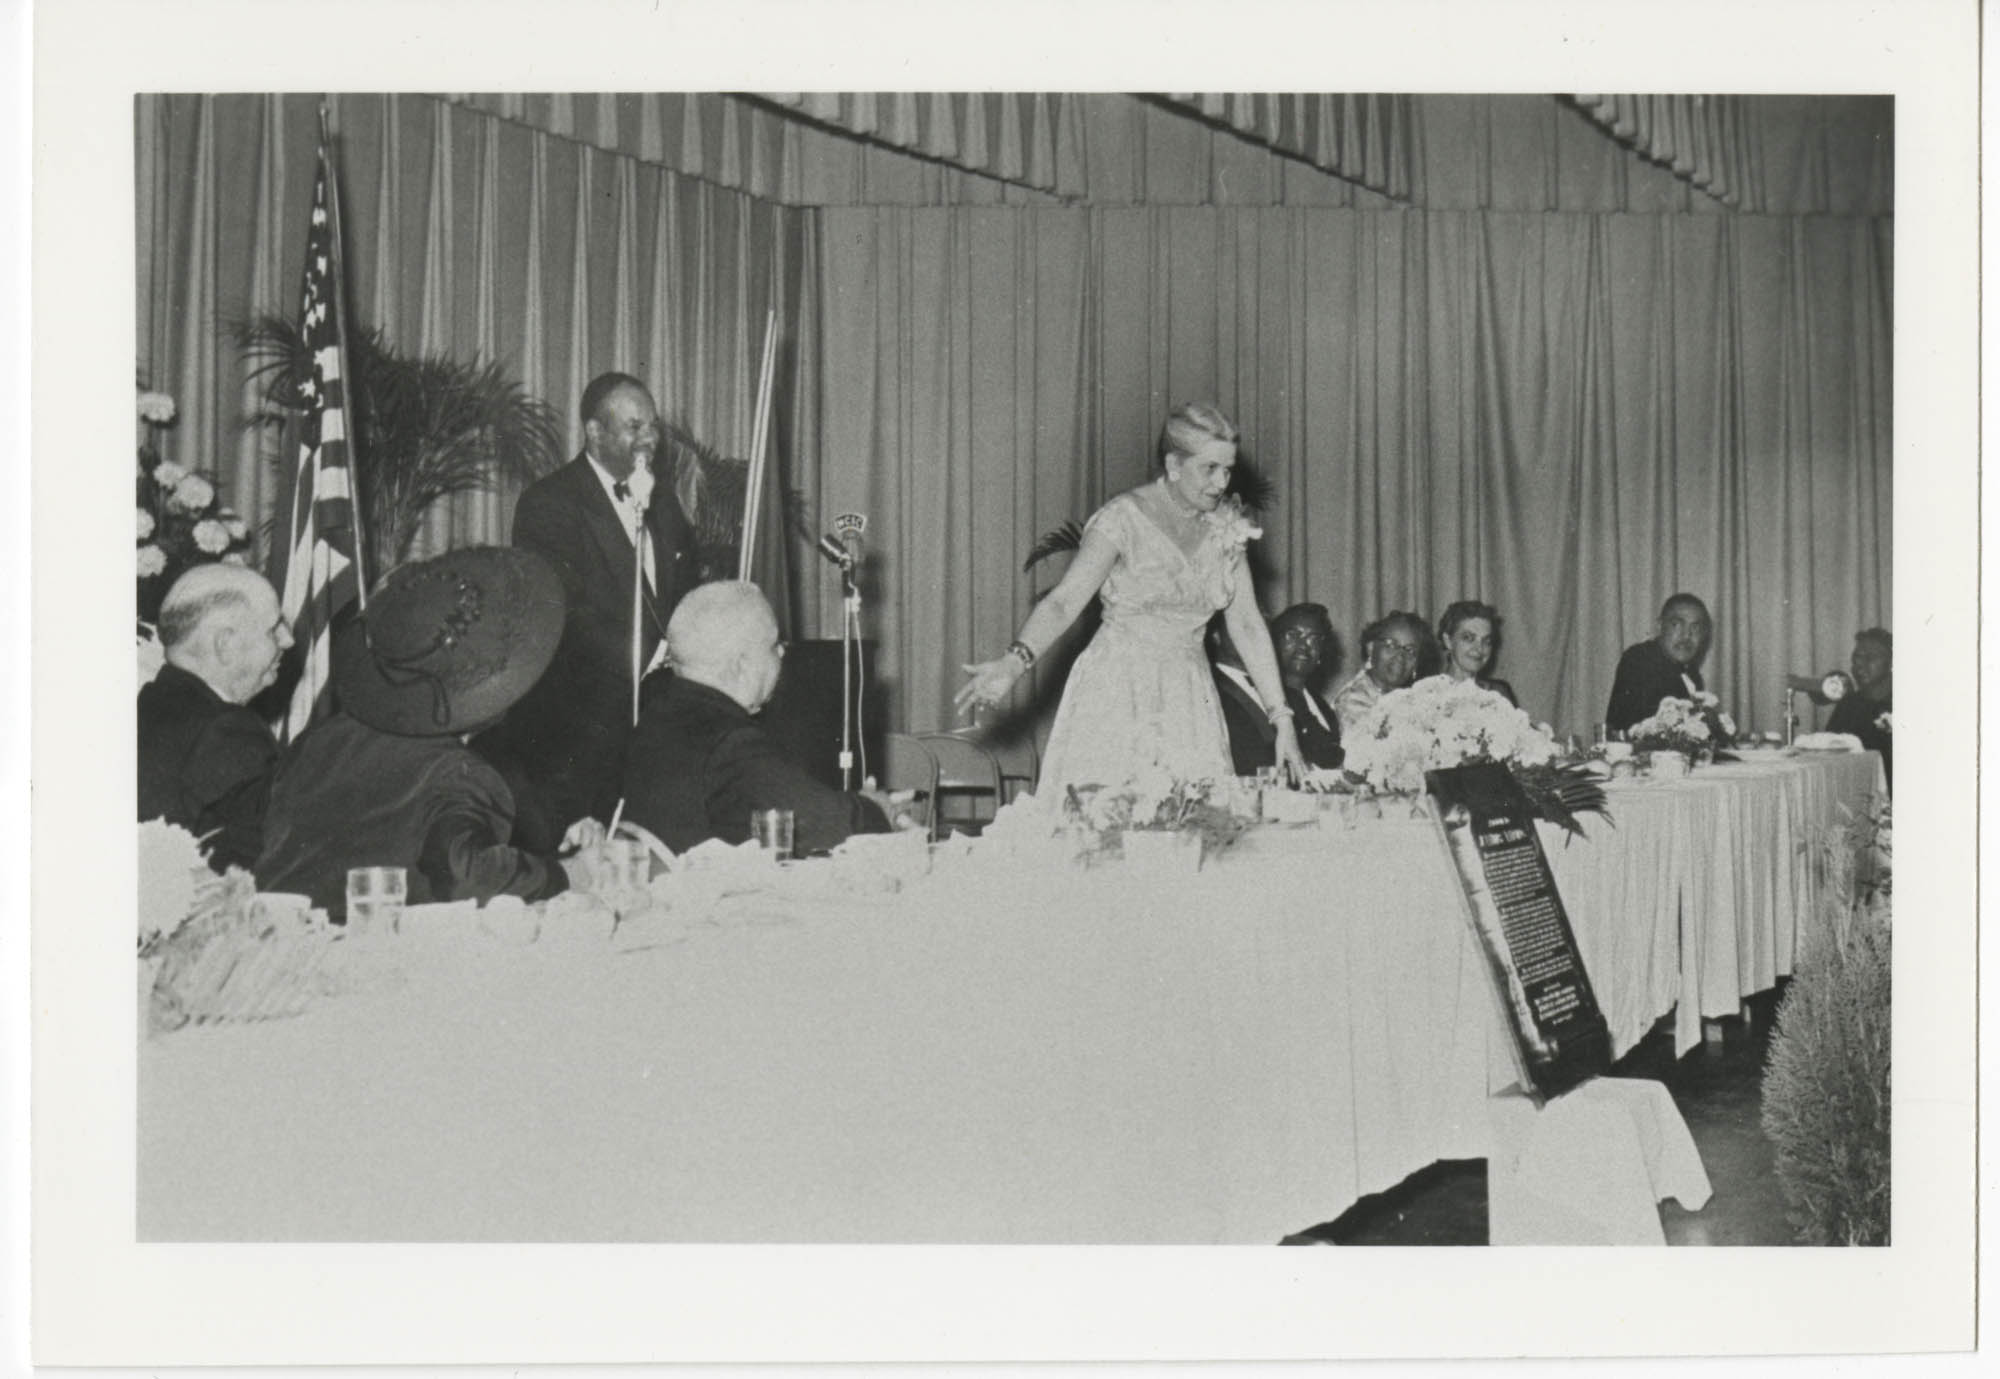 Unidentified Woman Speaking at Dinner Ceremony